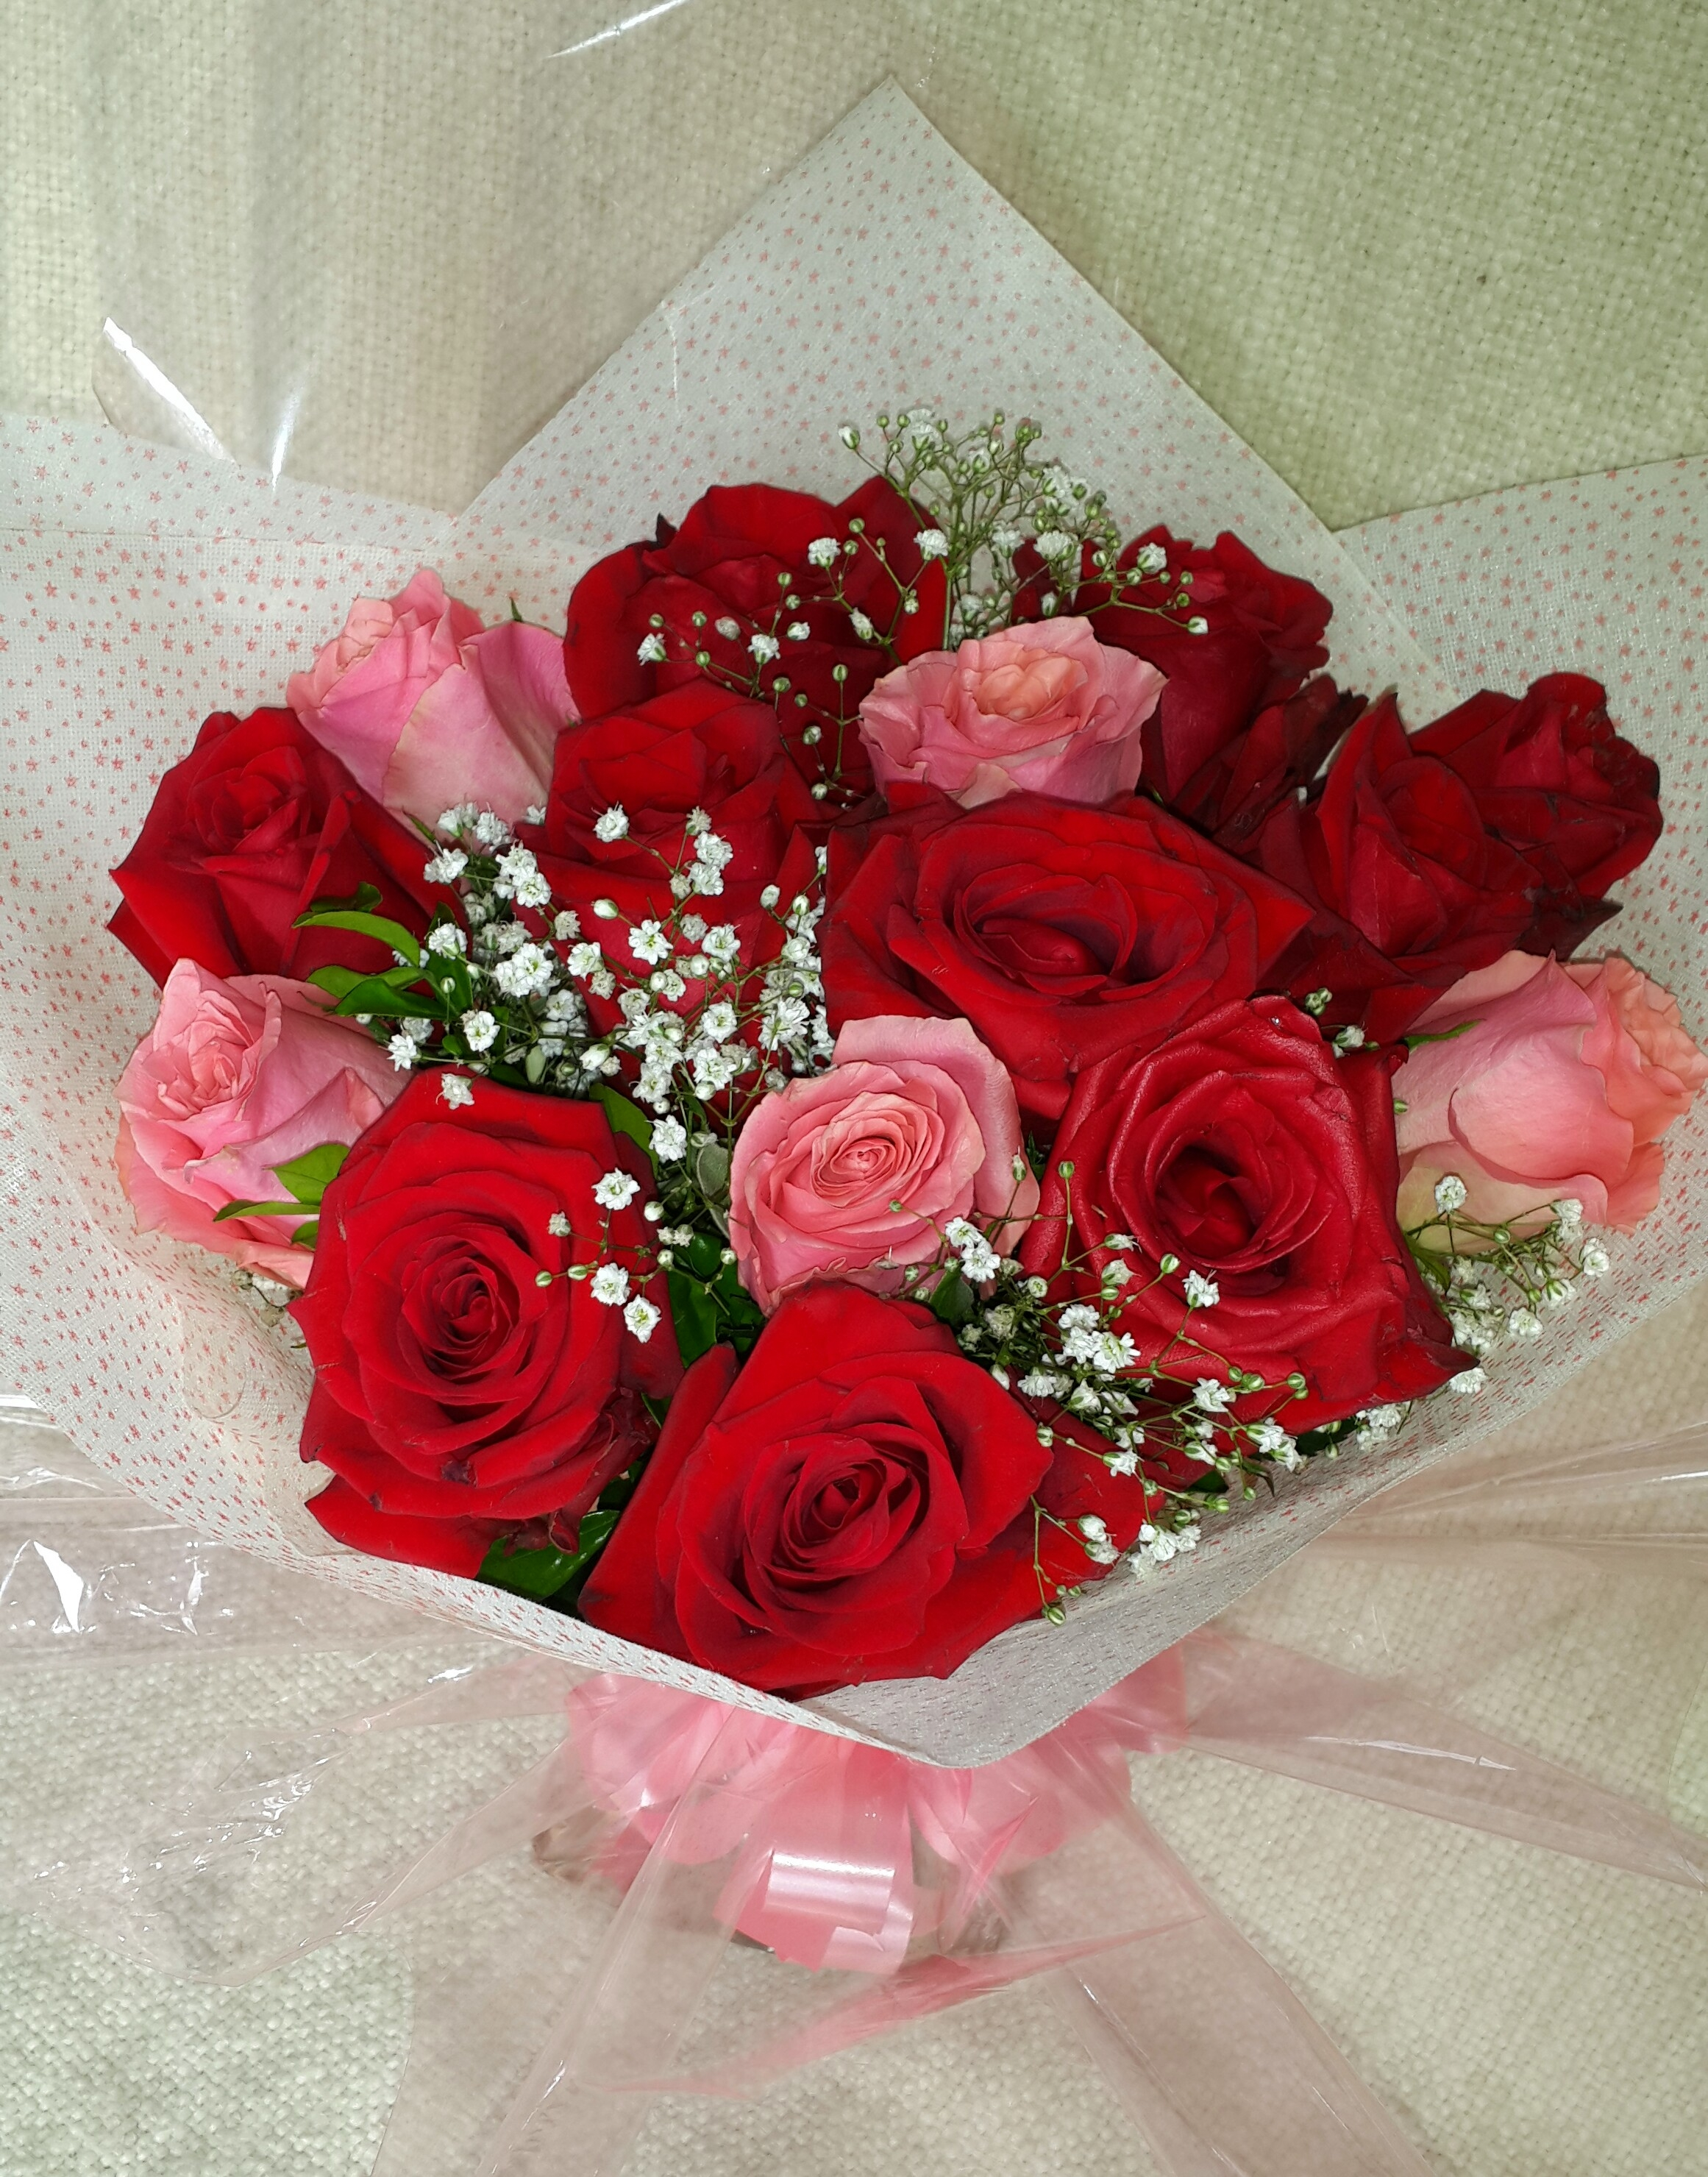 Flowerandballooncompany Blog Archive 15 Red Pink Roses